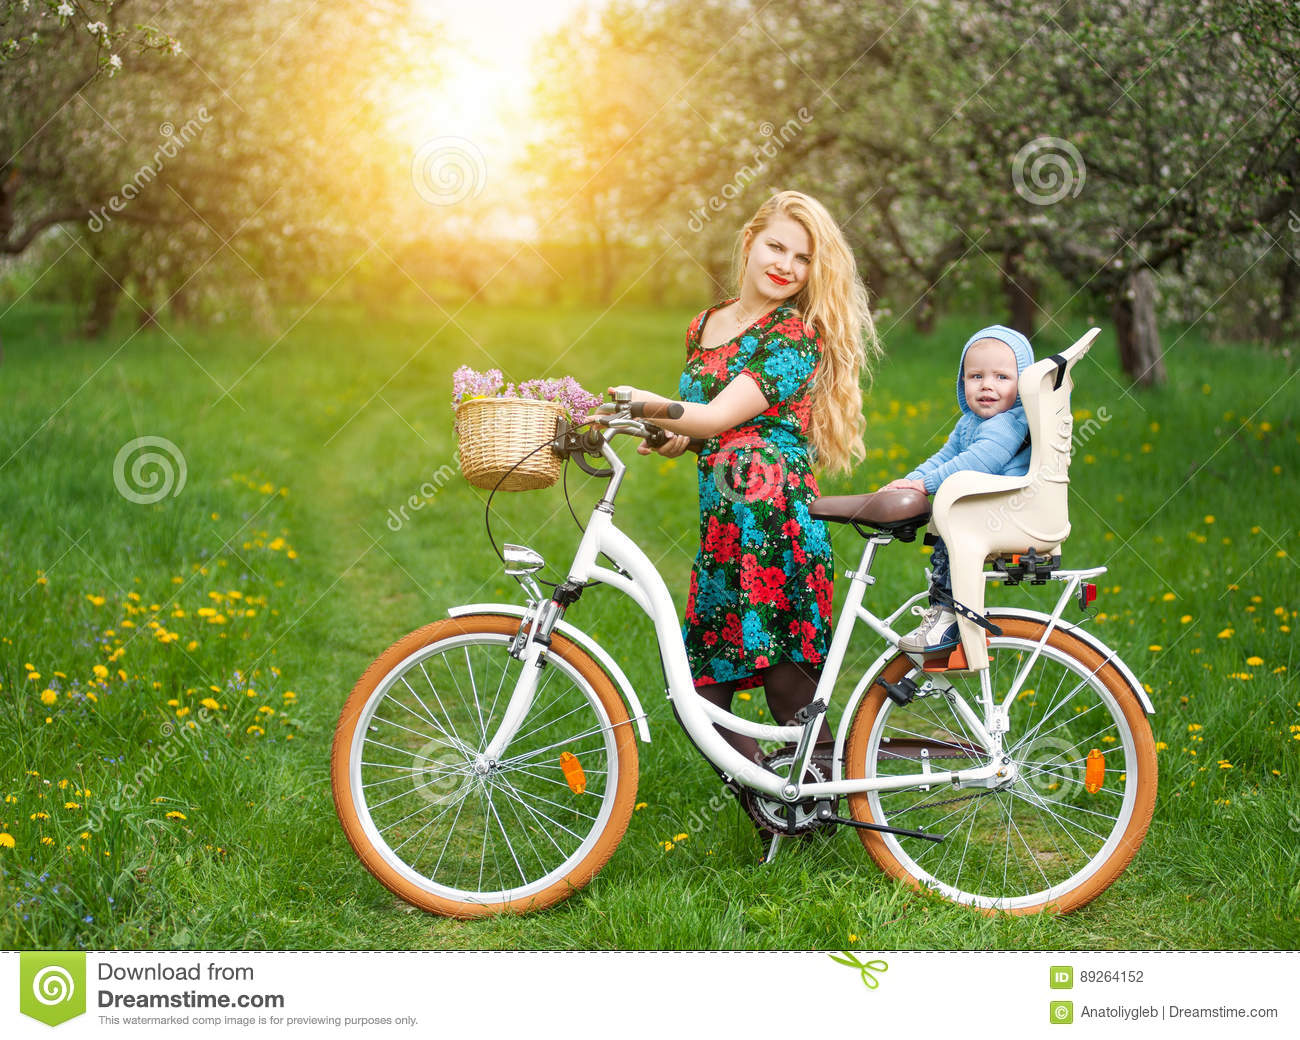 Chair Bike Blonde Female With City Bicycle With Baby In Bicycle Chair Stock